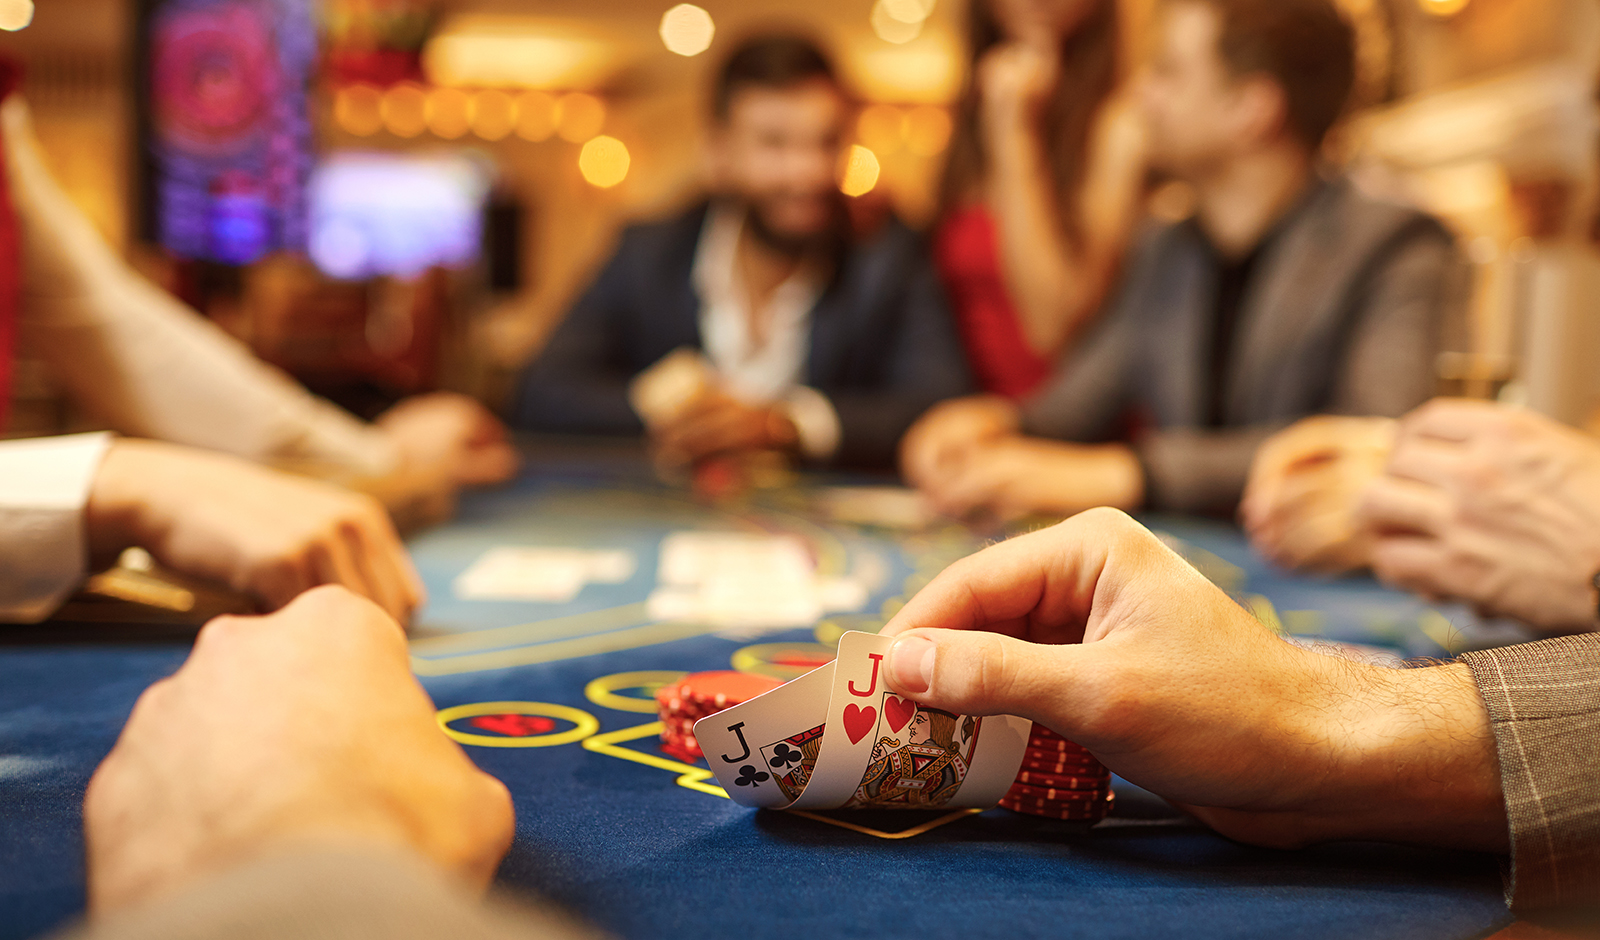 are-casinos-really-that-glamorous-main-image.